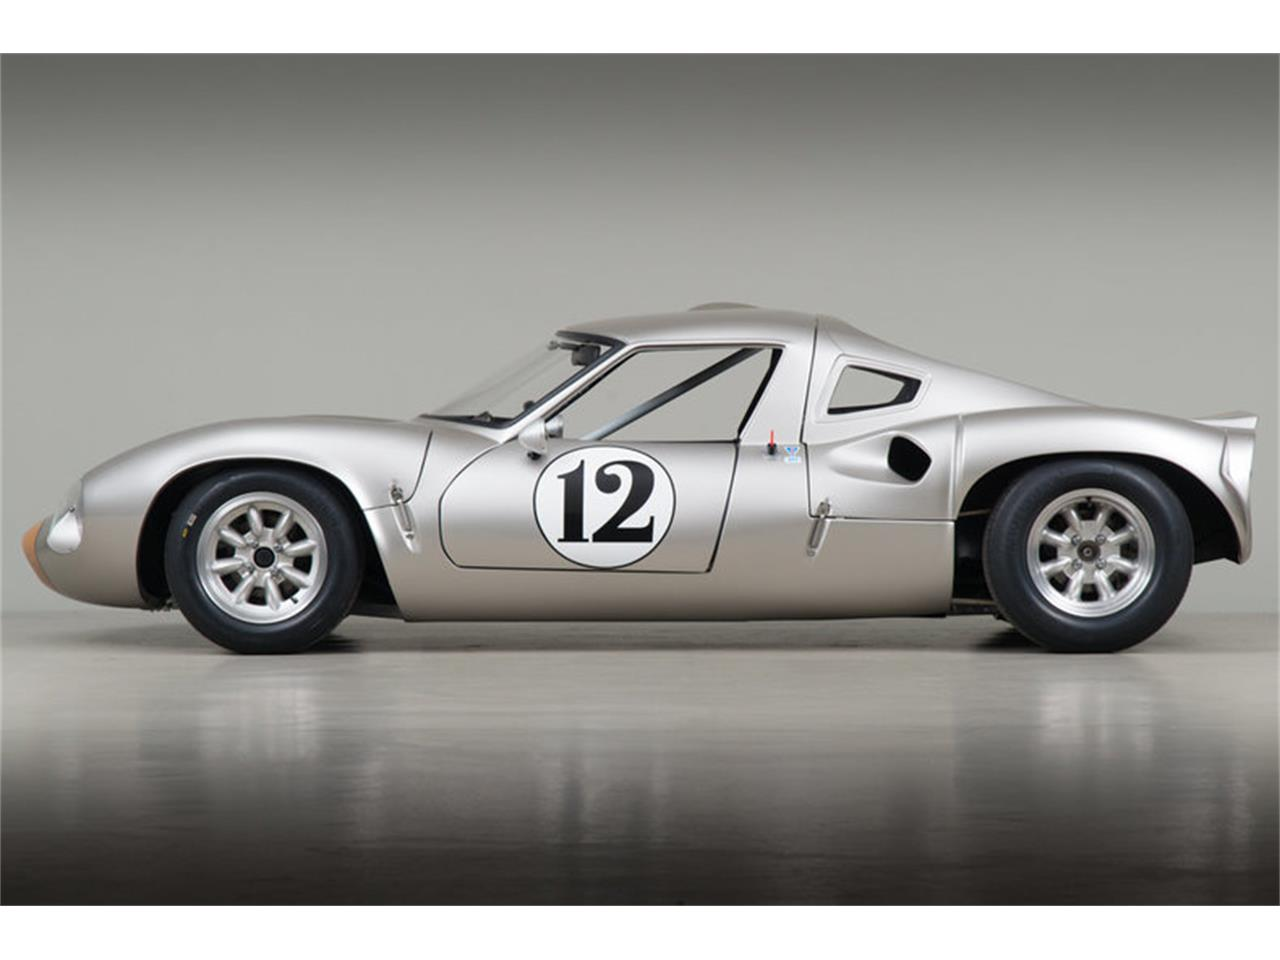 Large Picture of Classic '67 Ginetta G12 located in California Auction Vehicle Offered by Canepa - J78U